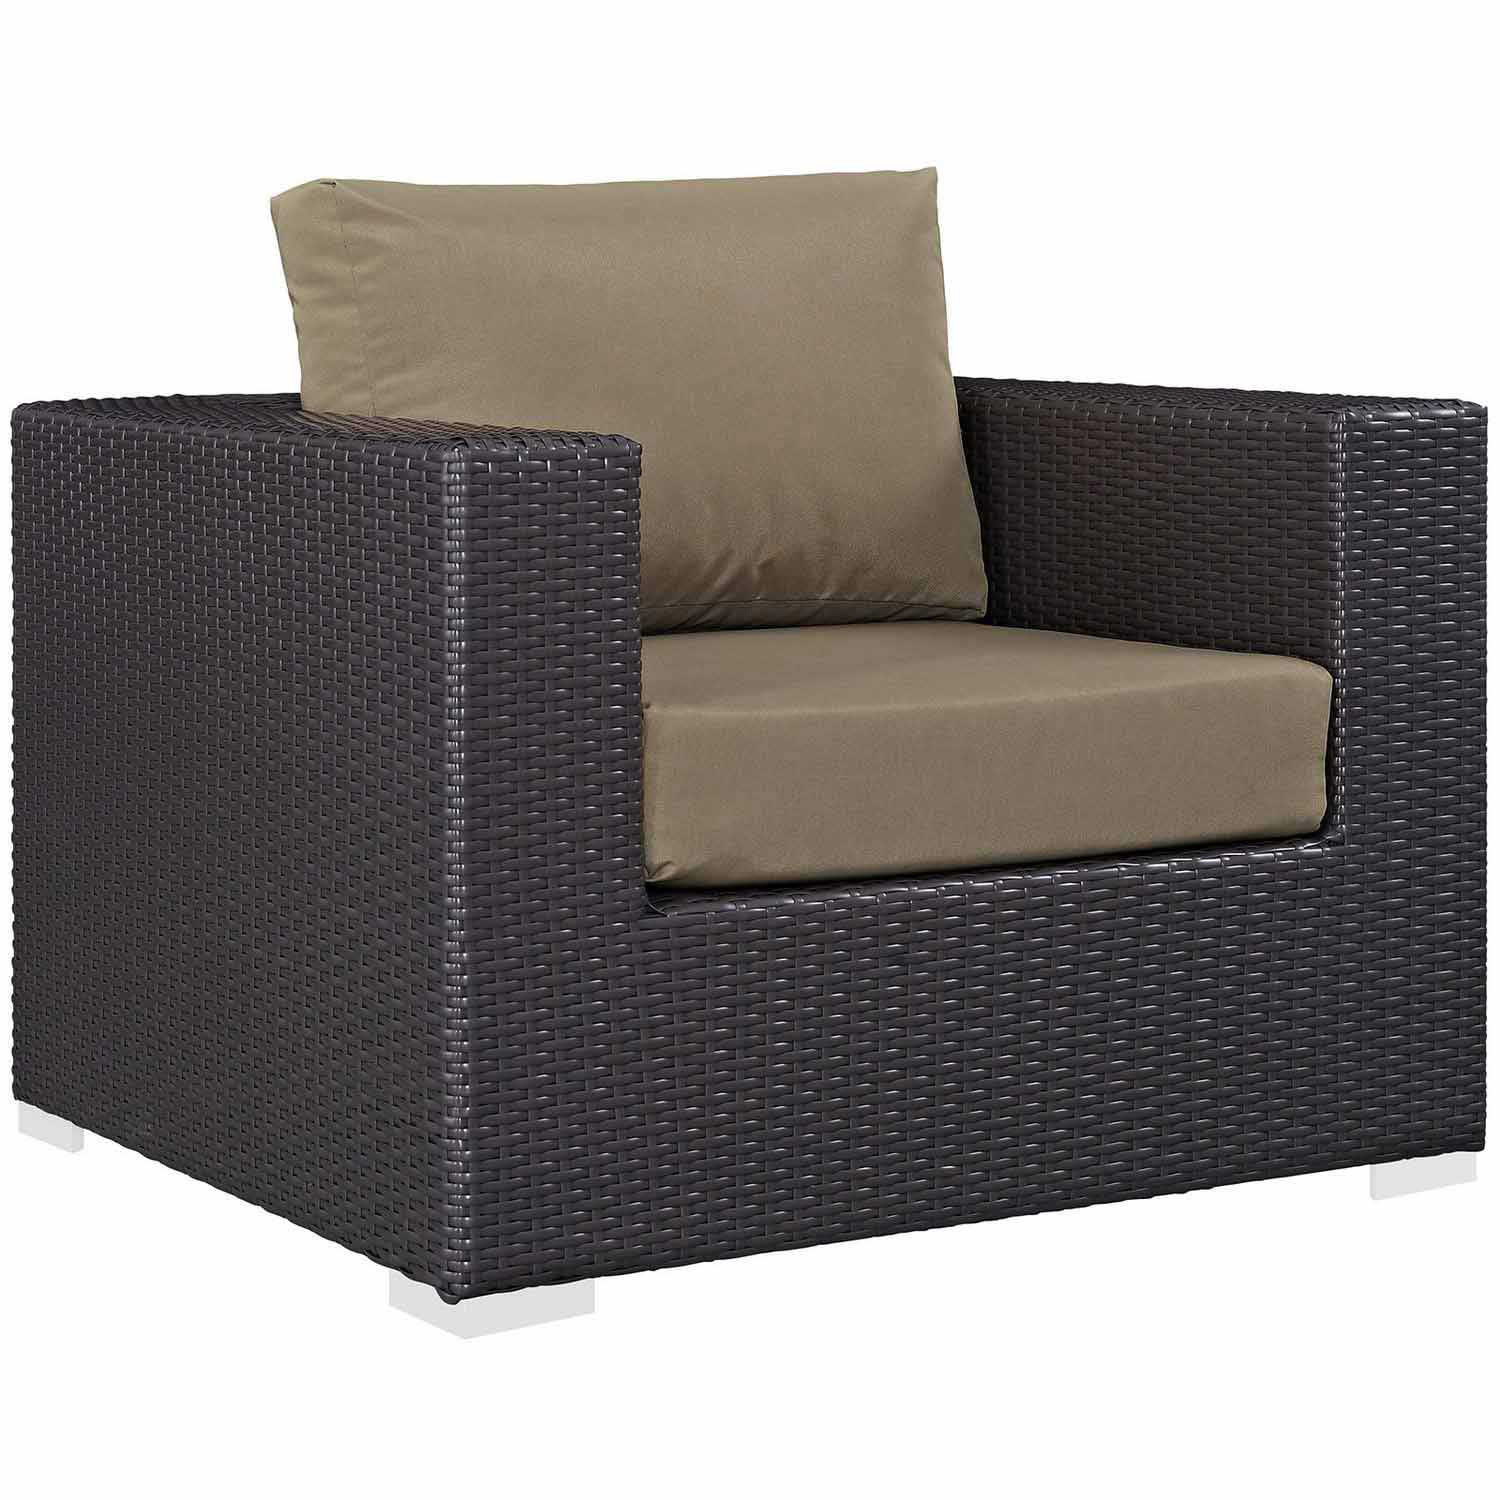 Modway Convene Outdoor Patio Arm Chair - Espresso Mocha